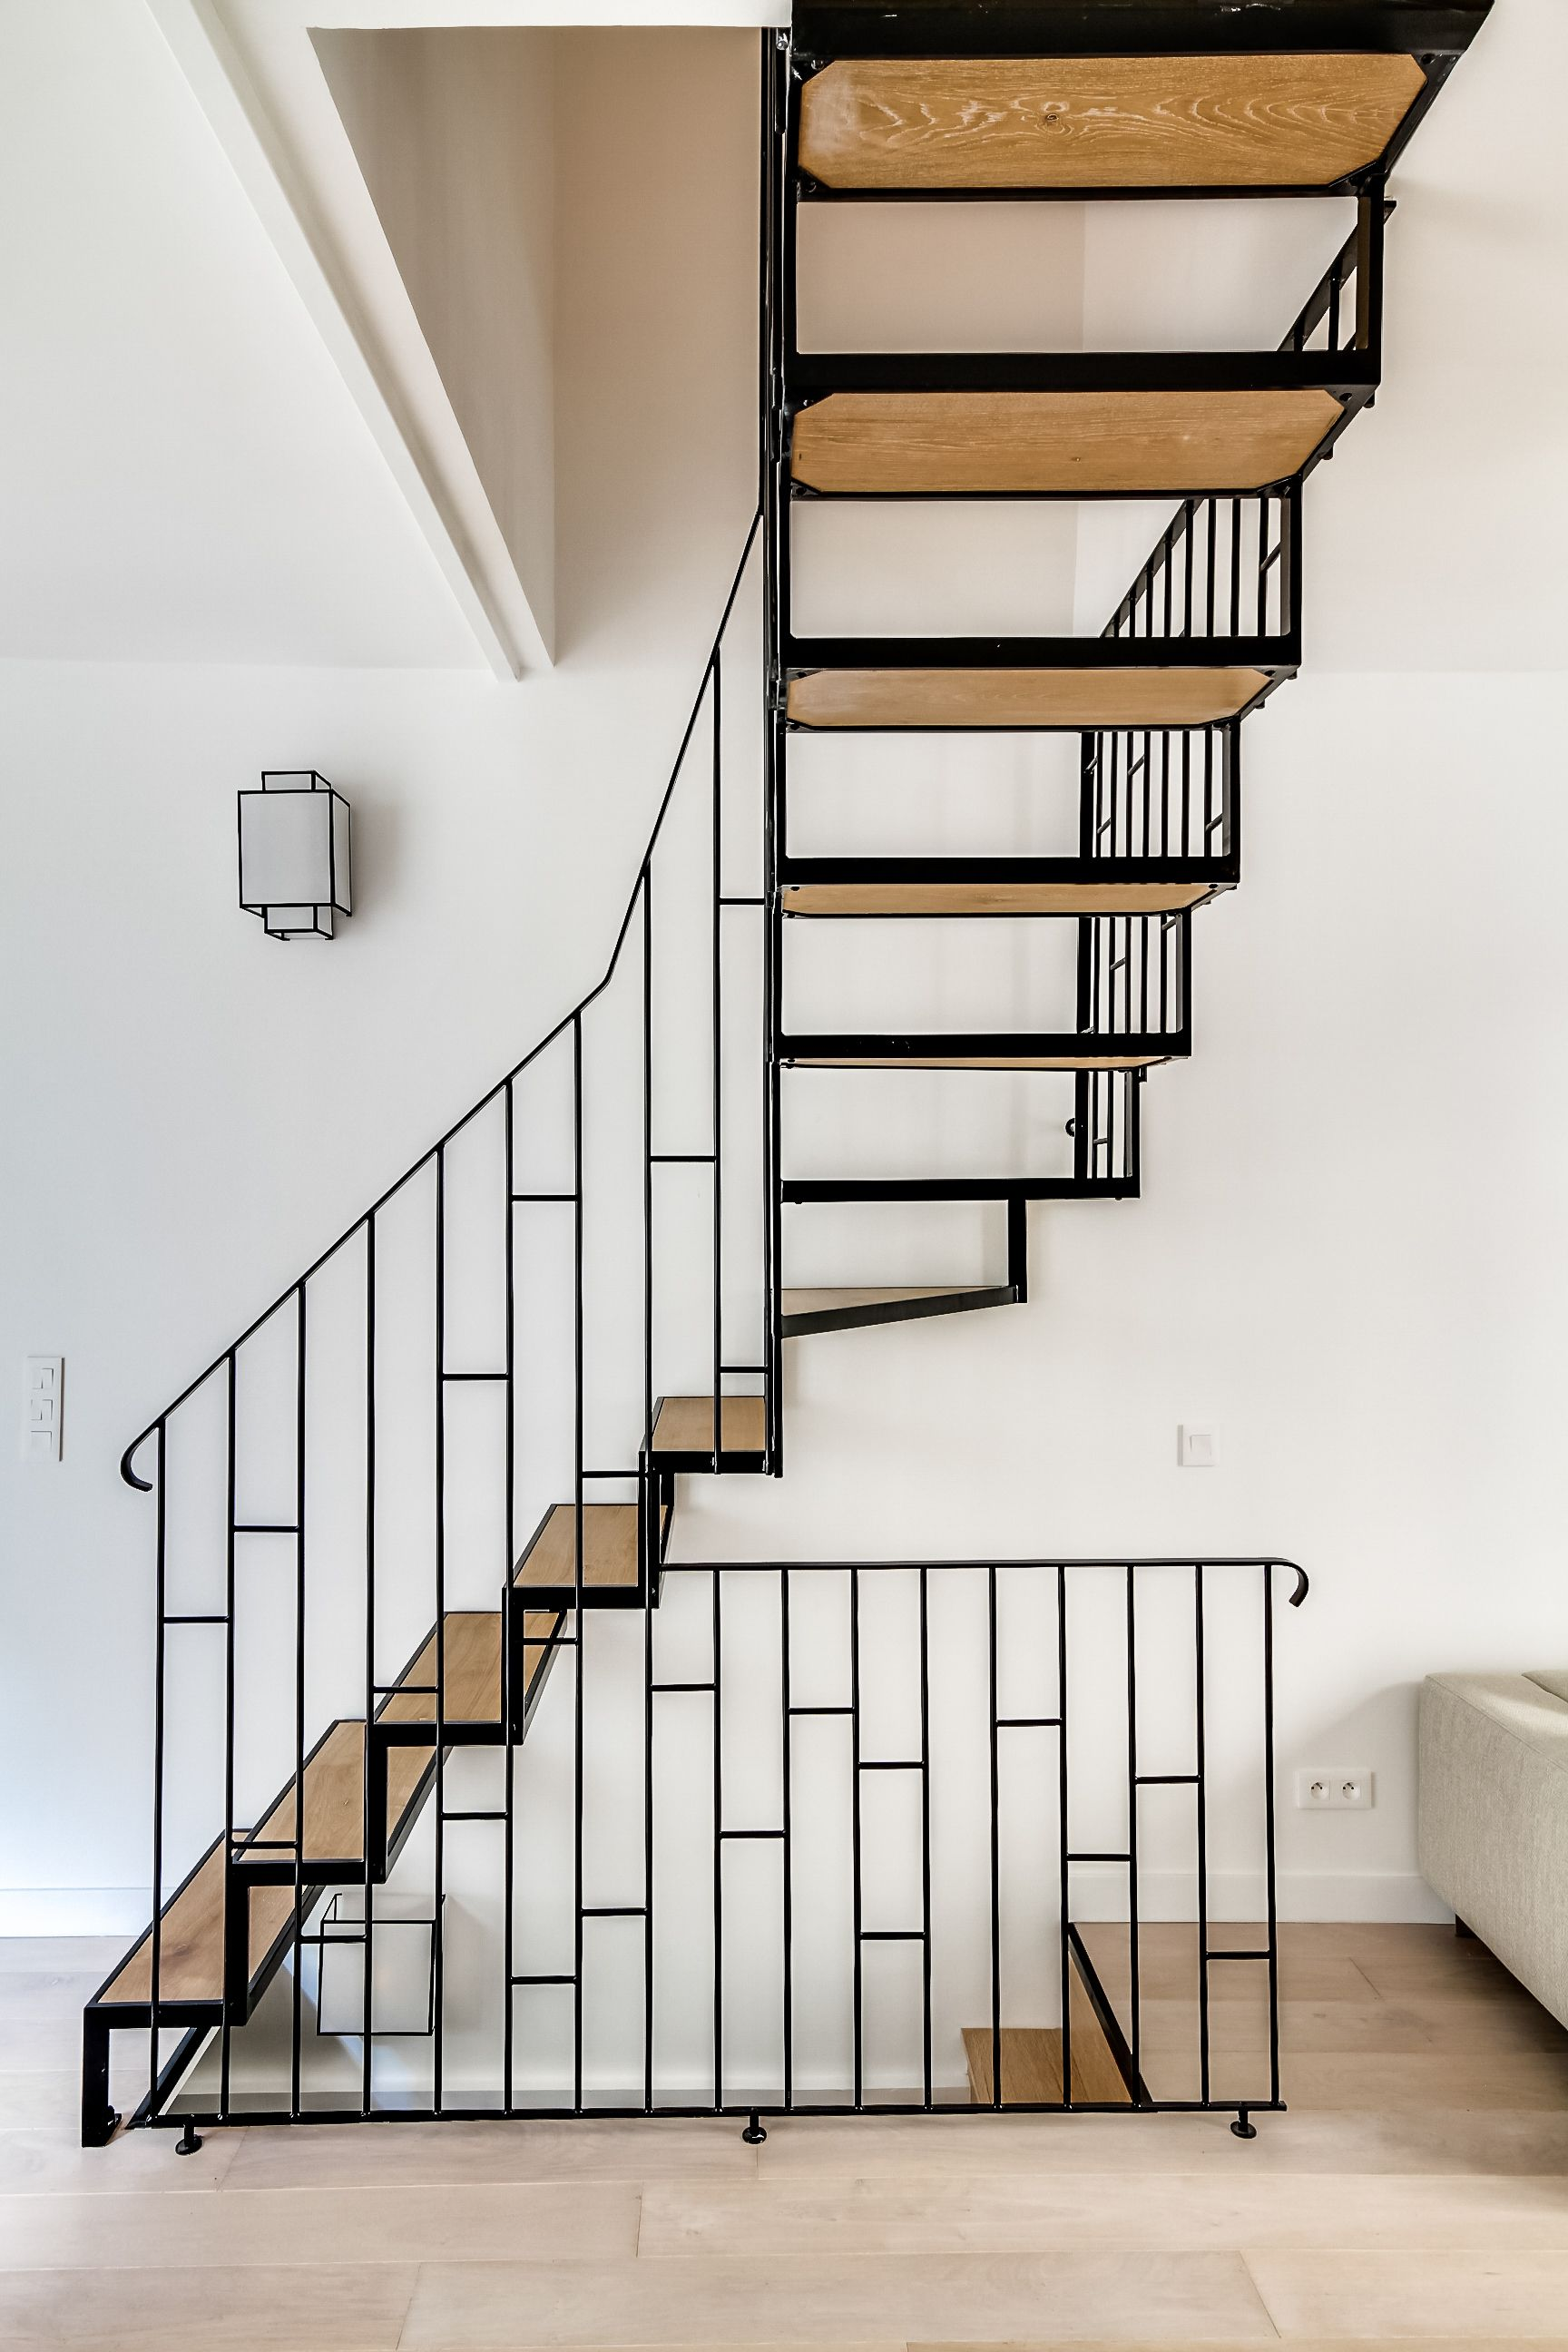 escalier bois fer montmartre escalier en 2019 escalier bois rampe escalier et escaliers maison. Black Bedroom Furniture Sets. Home Design Ideas